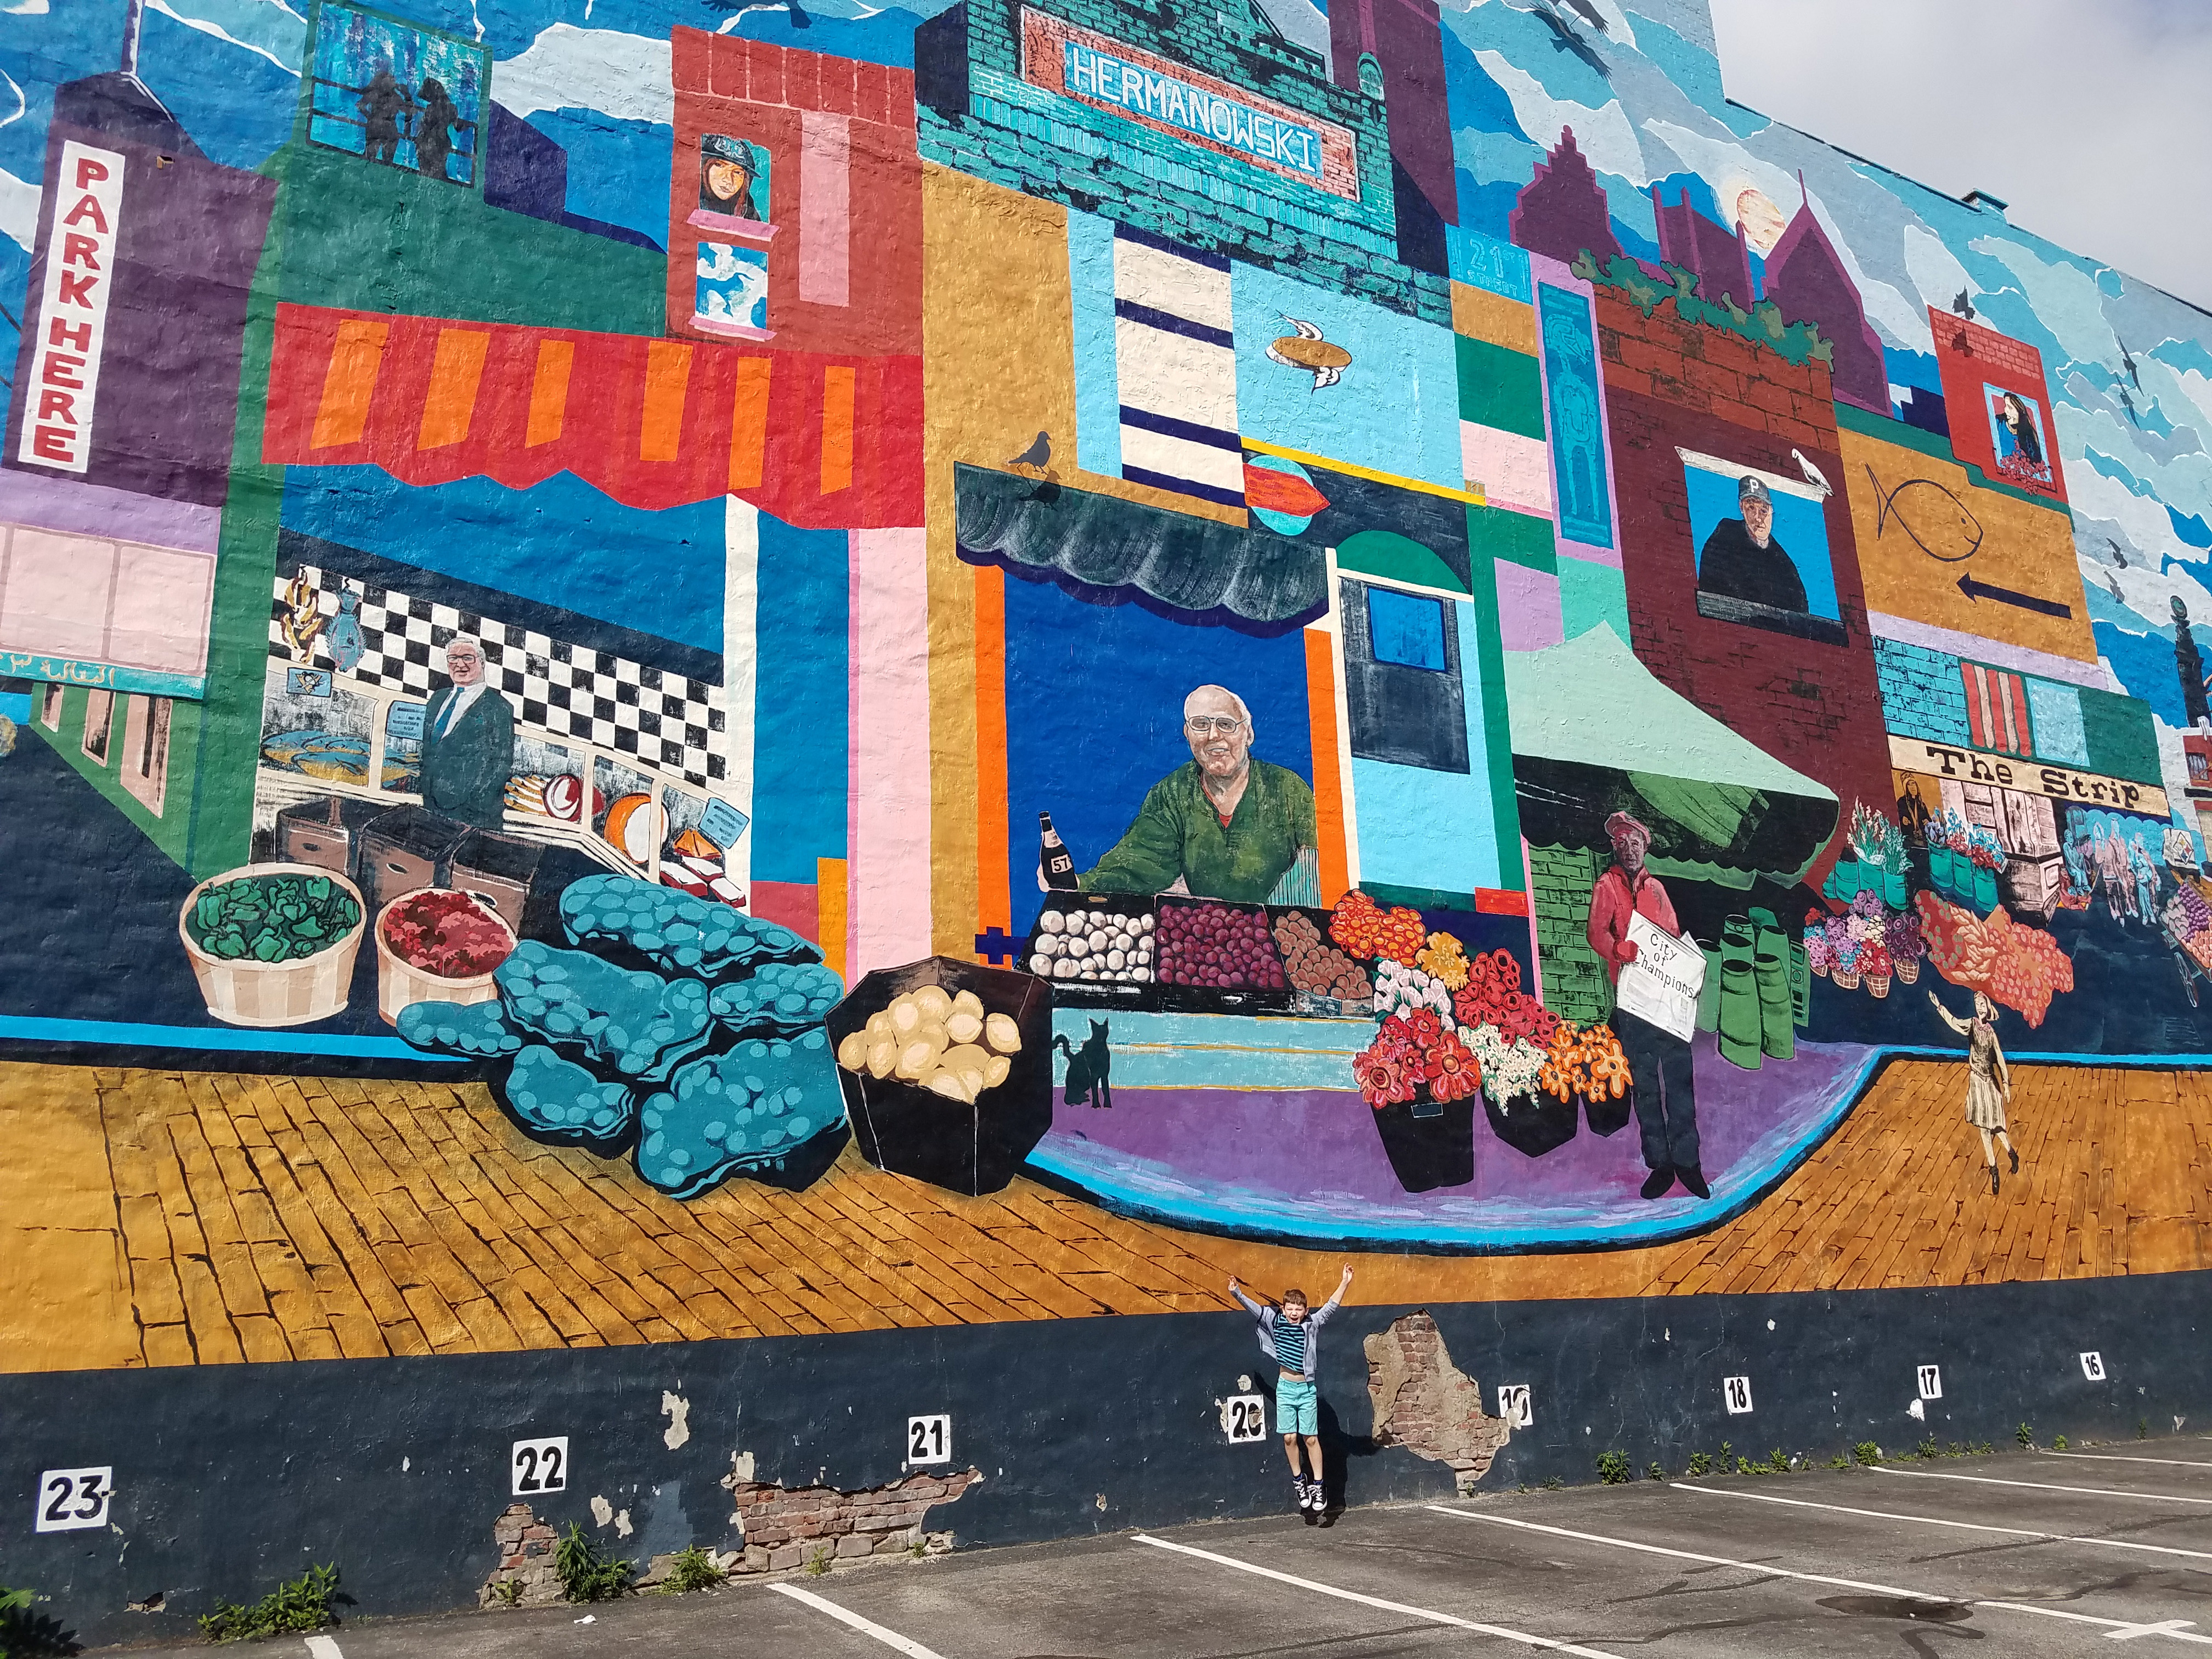 Wall art in Pittsburgh's Strip District